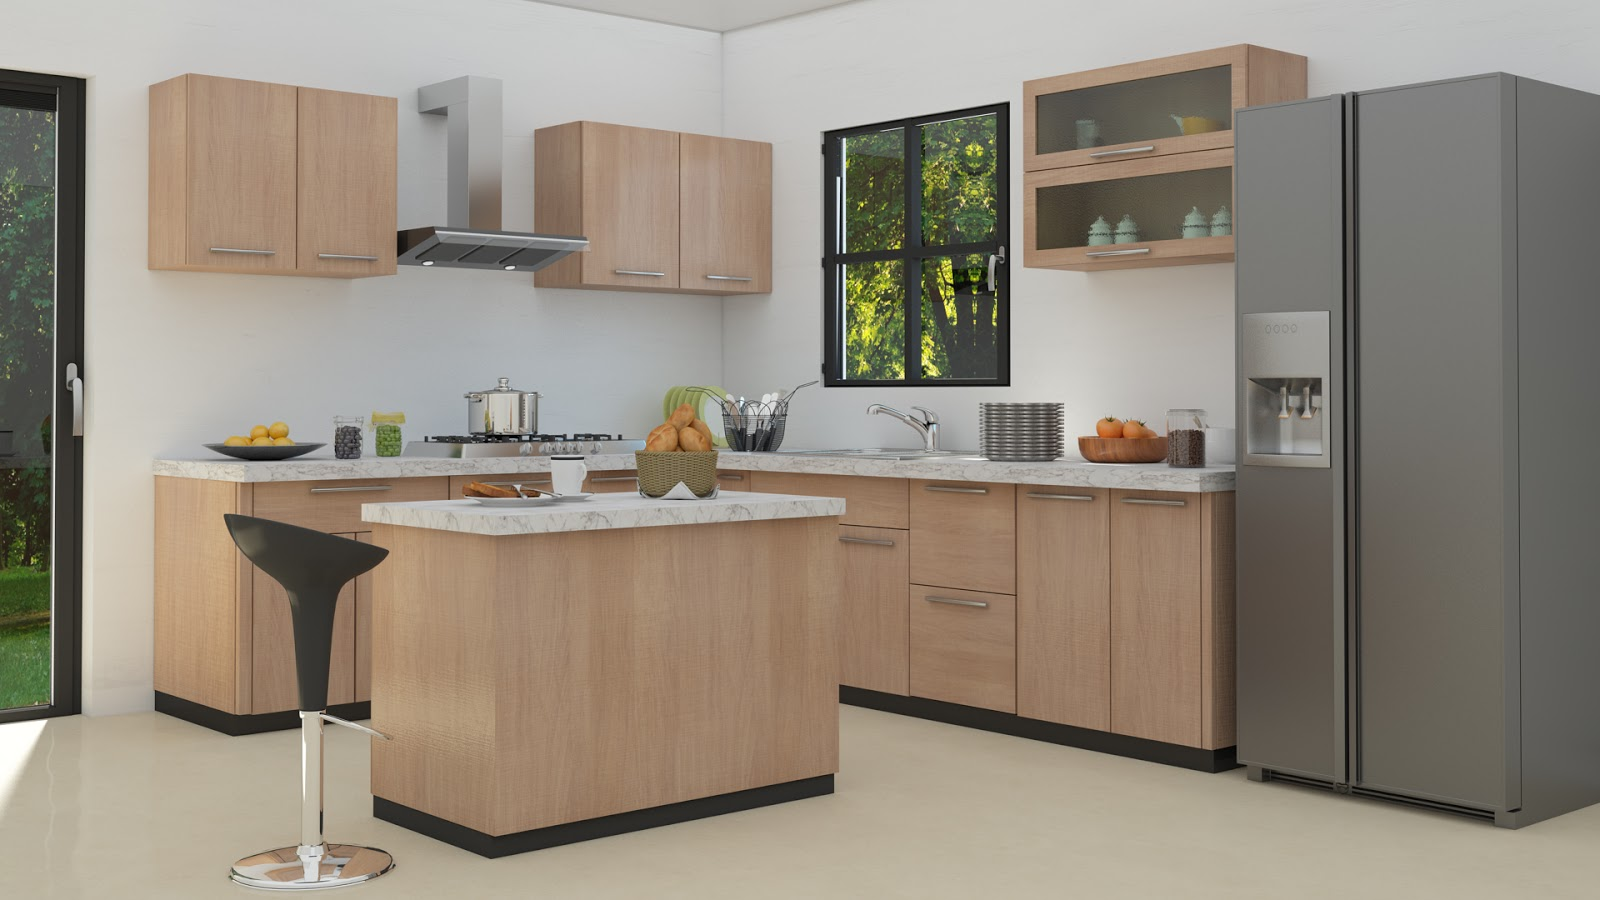 Modular Kitchen Design For L Shape Design Ideas For L Shaped Kitchens Interior Decor Blog